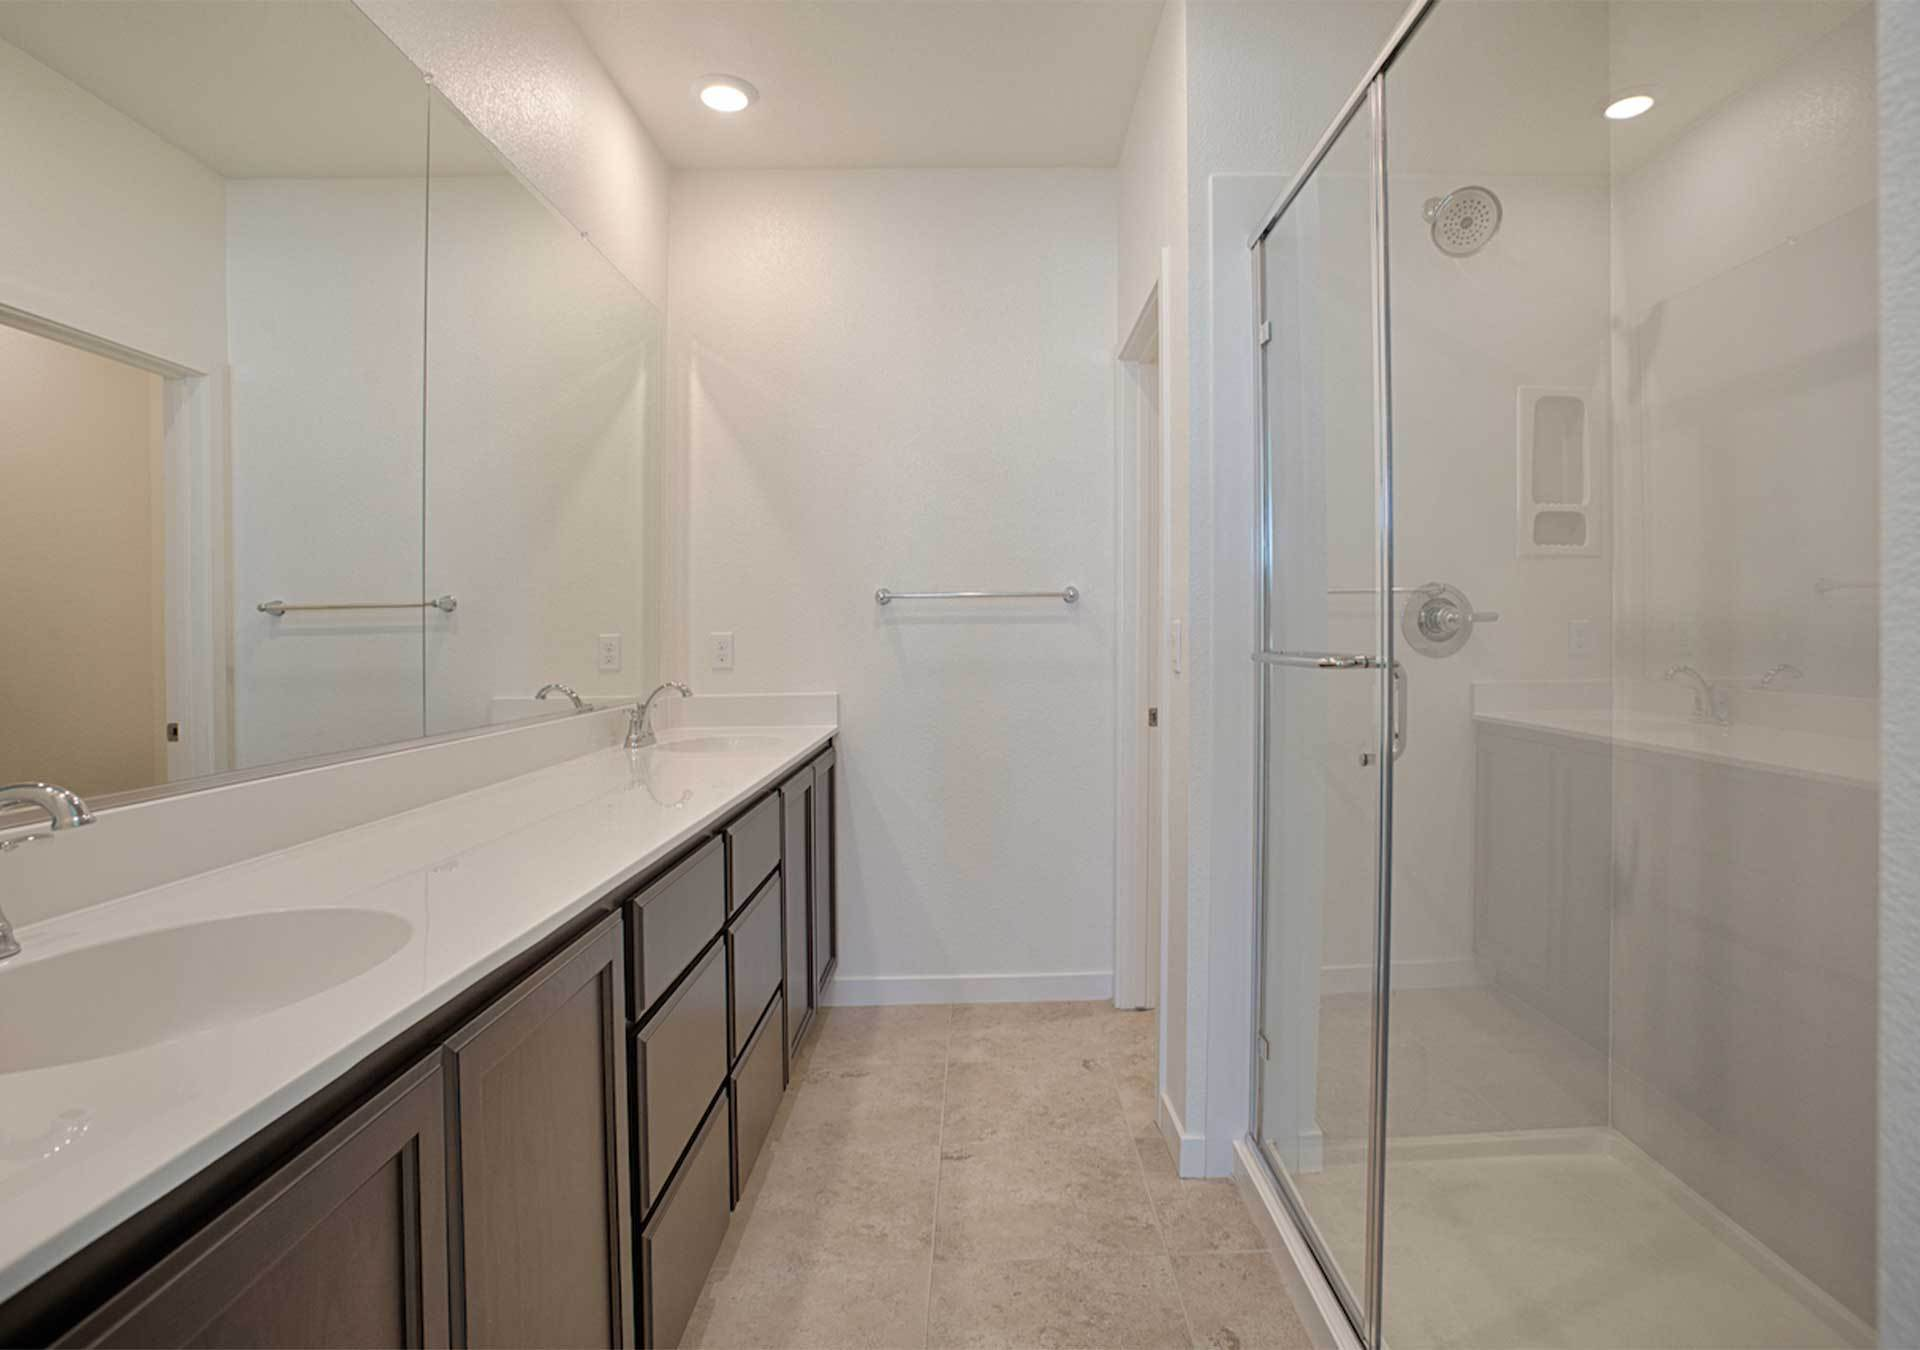 Bathroom featured in the Plan 1 By Tri Pointe Homes in Oakland-Alameda, CA